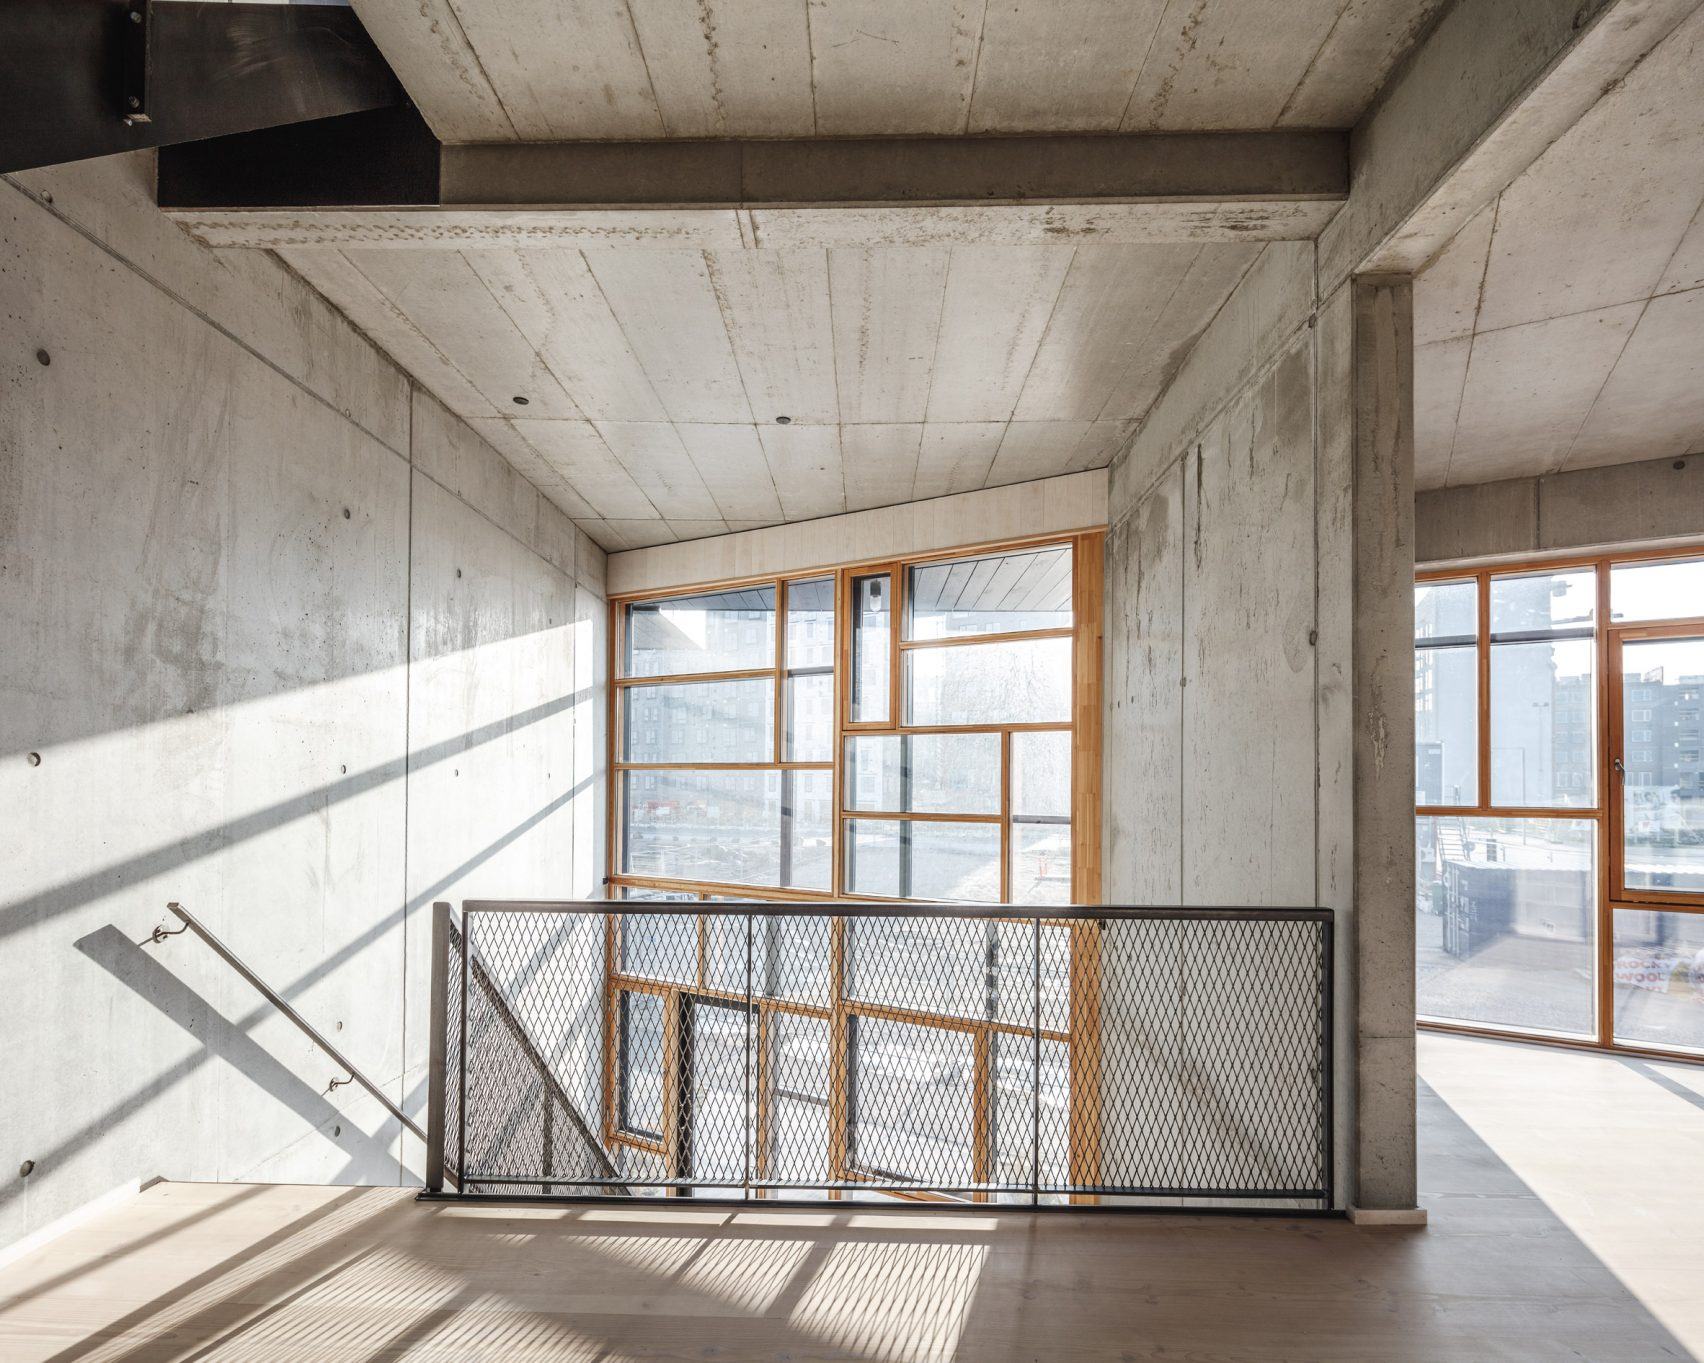 Lendager Group design of Upcycle Studios in Denmark built from recycled materials